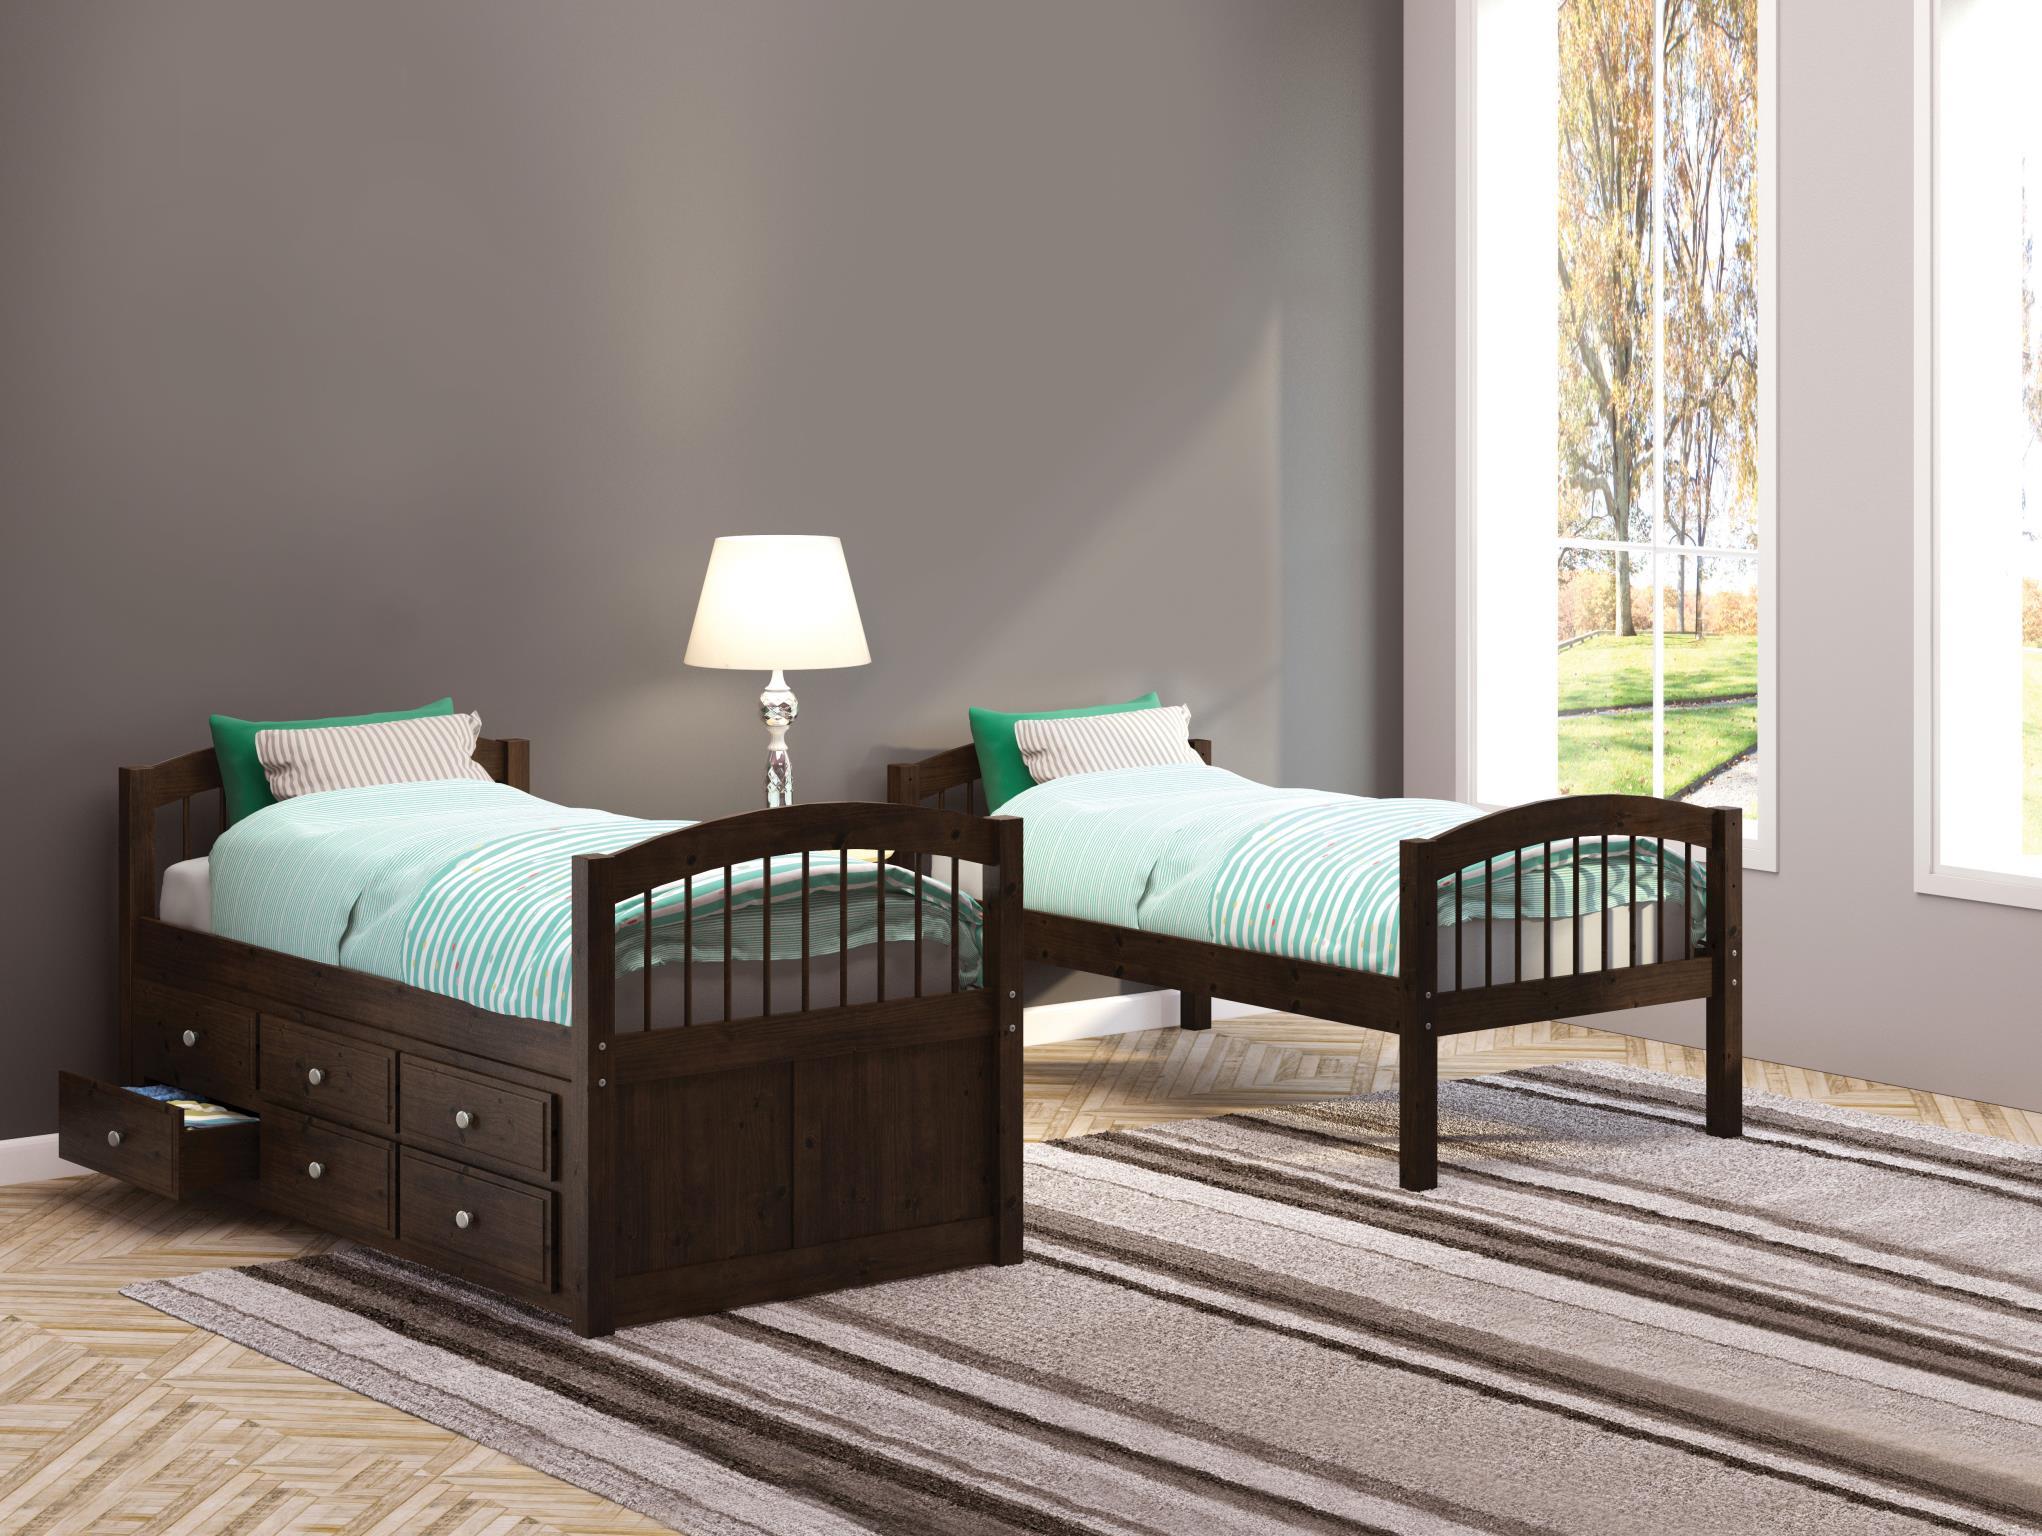 Espresso Twin/Twin Bunk Beds Used Separately